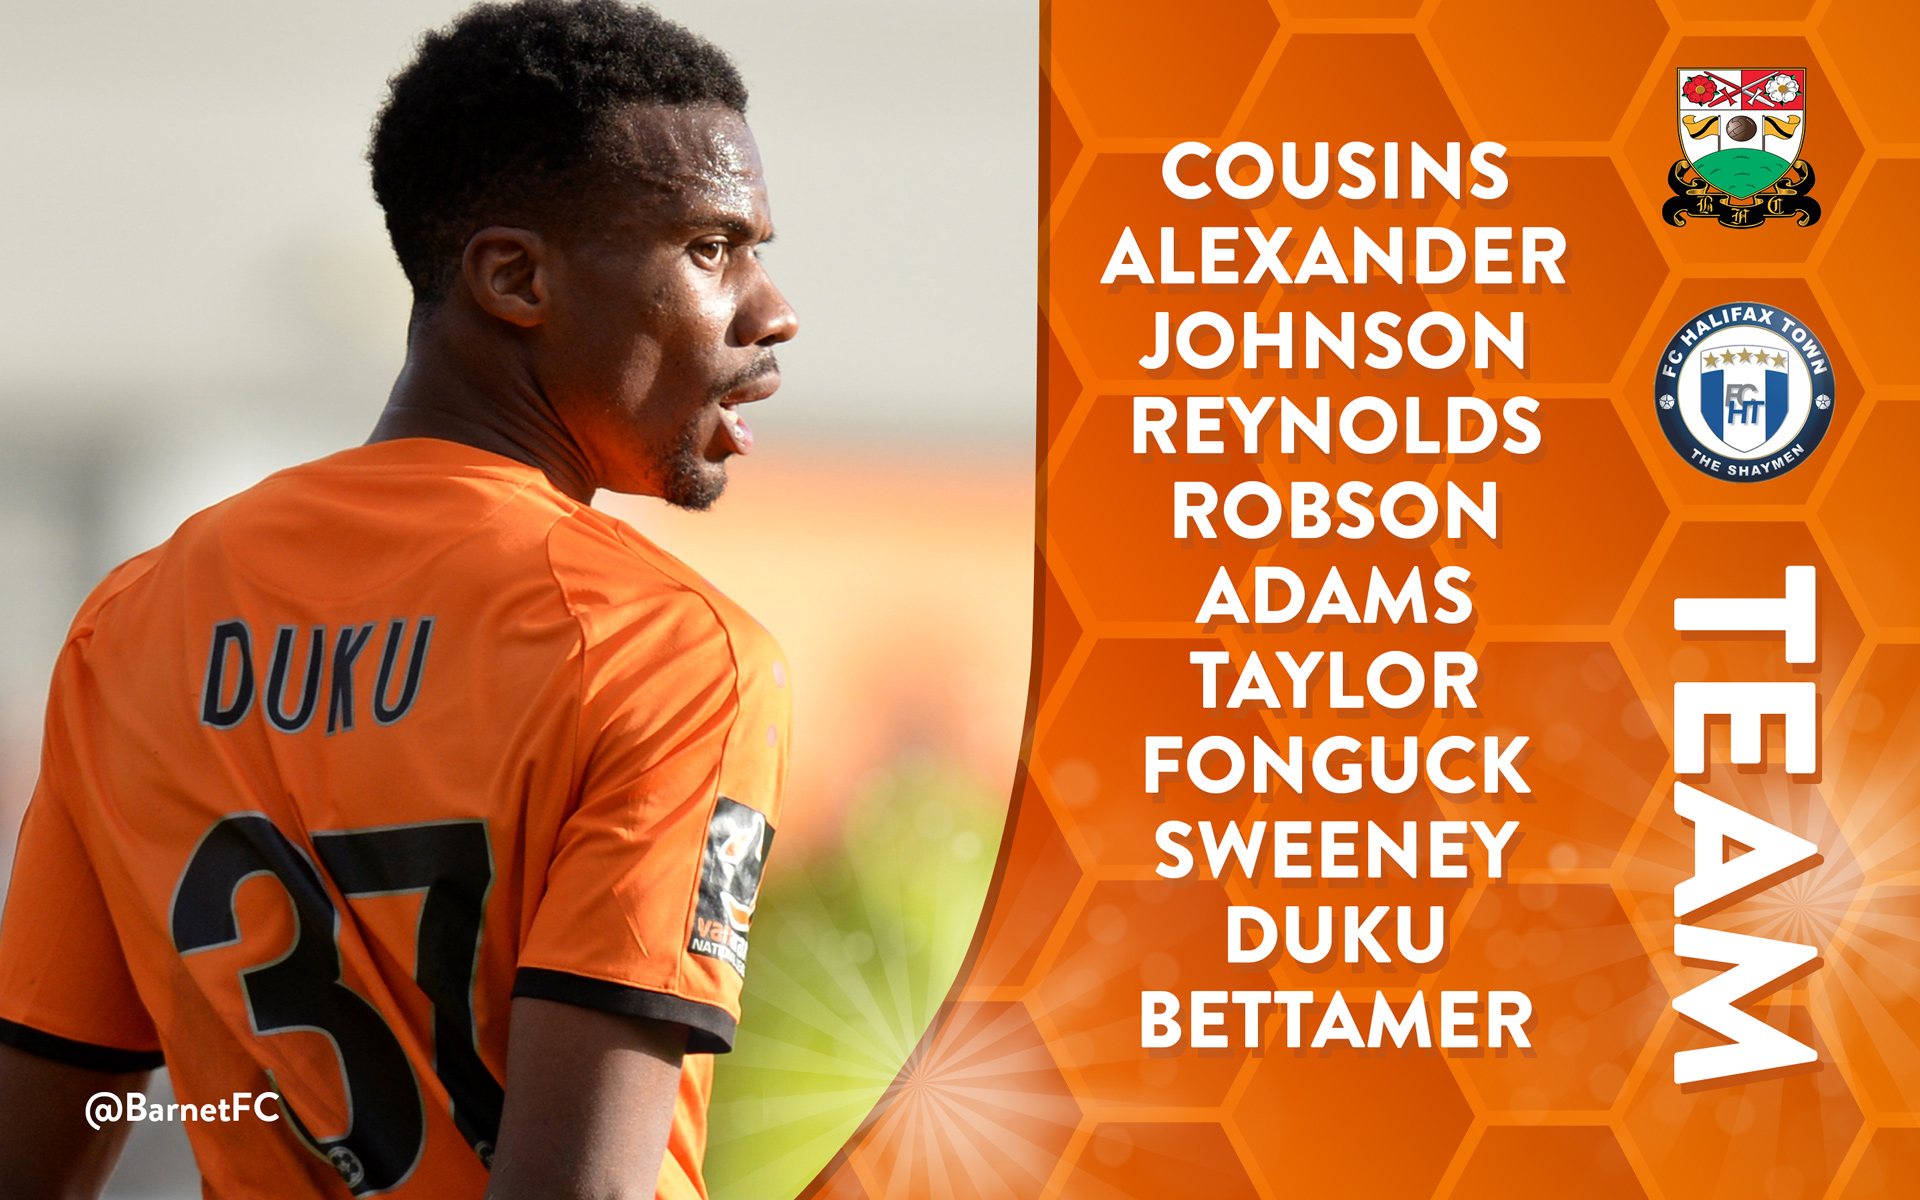 Barnet FC Starting Line Up Graphic For Social Media